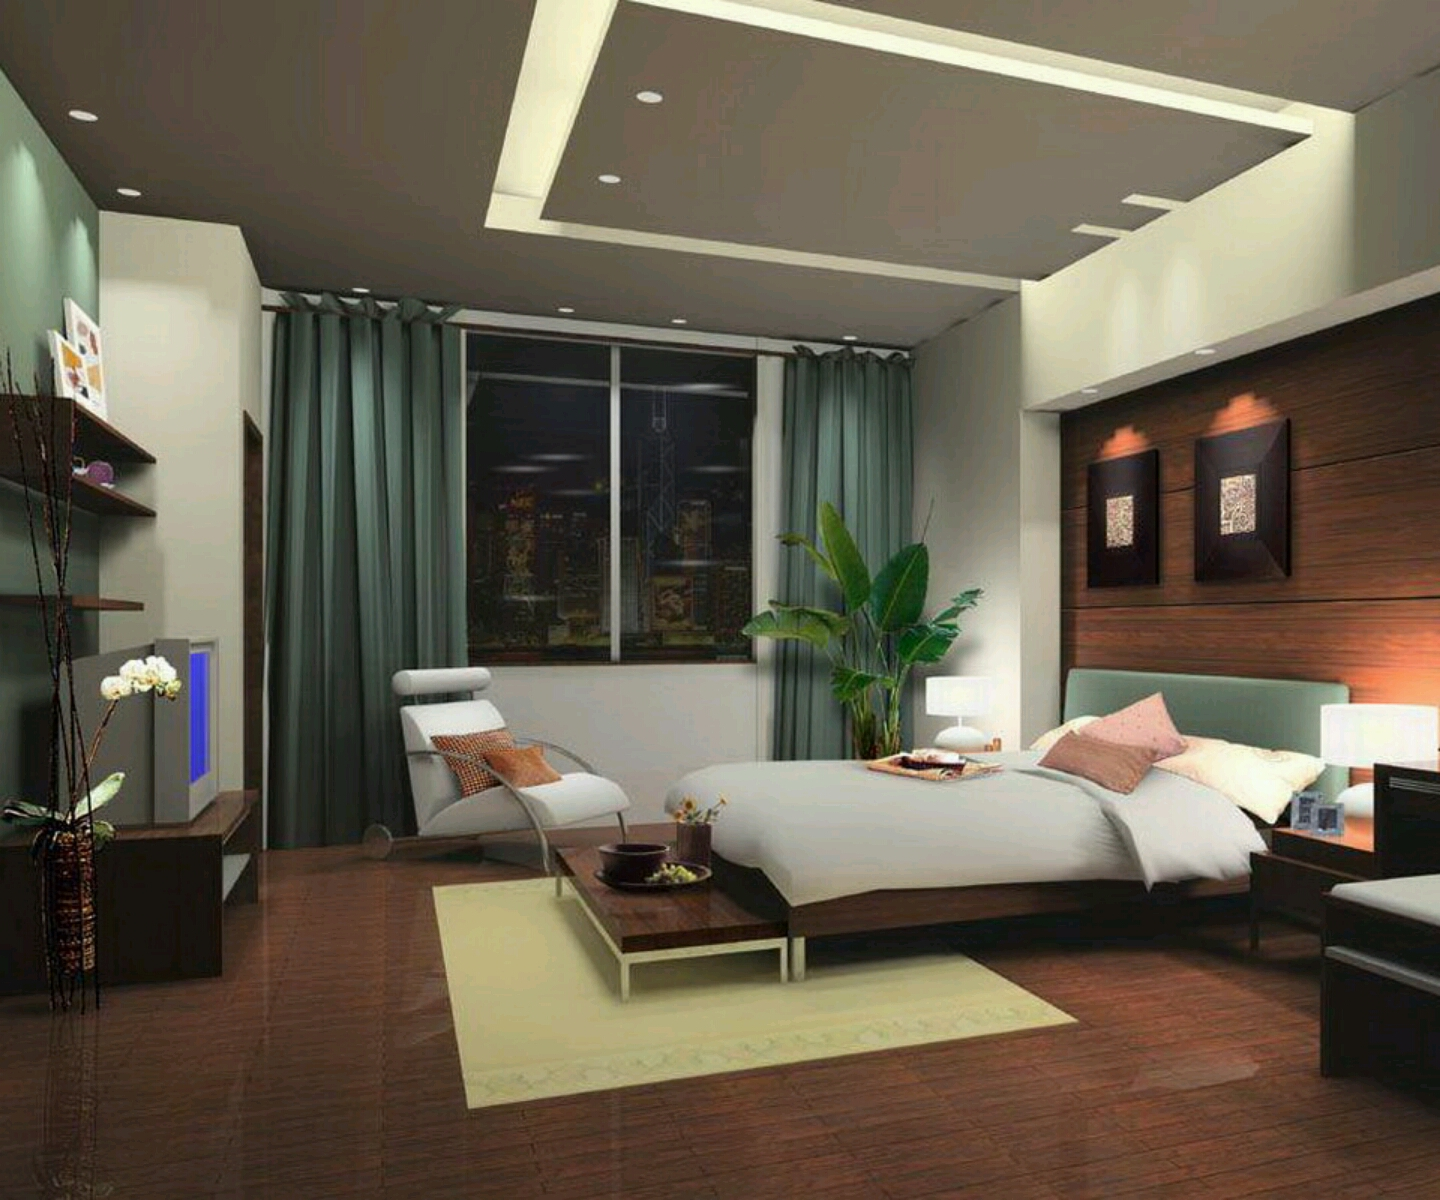 New home designs latest modern bedrooms designs best ideas for Best bedroom decor ideas